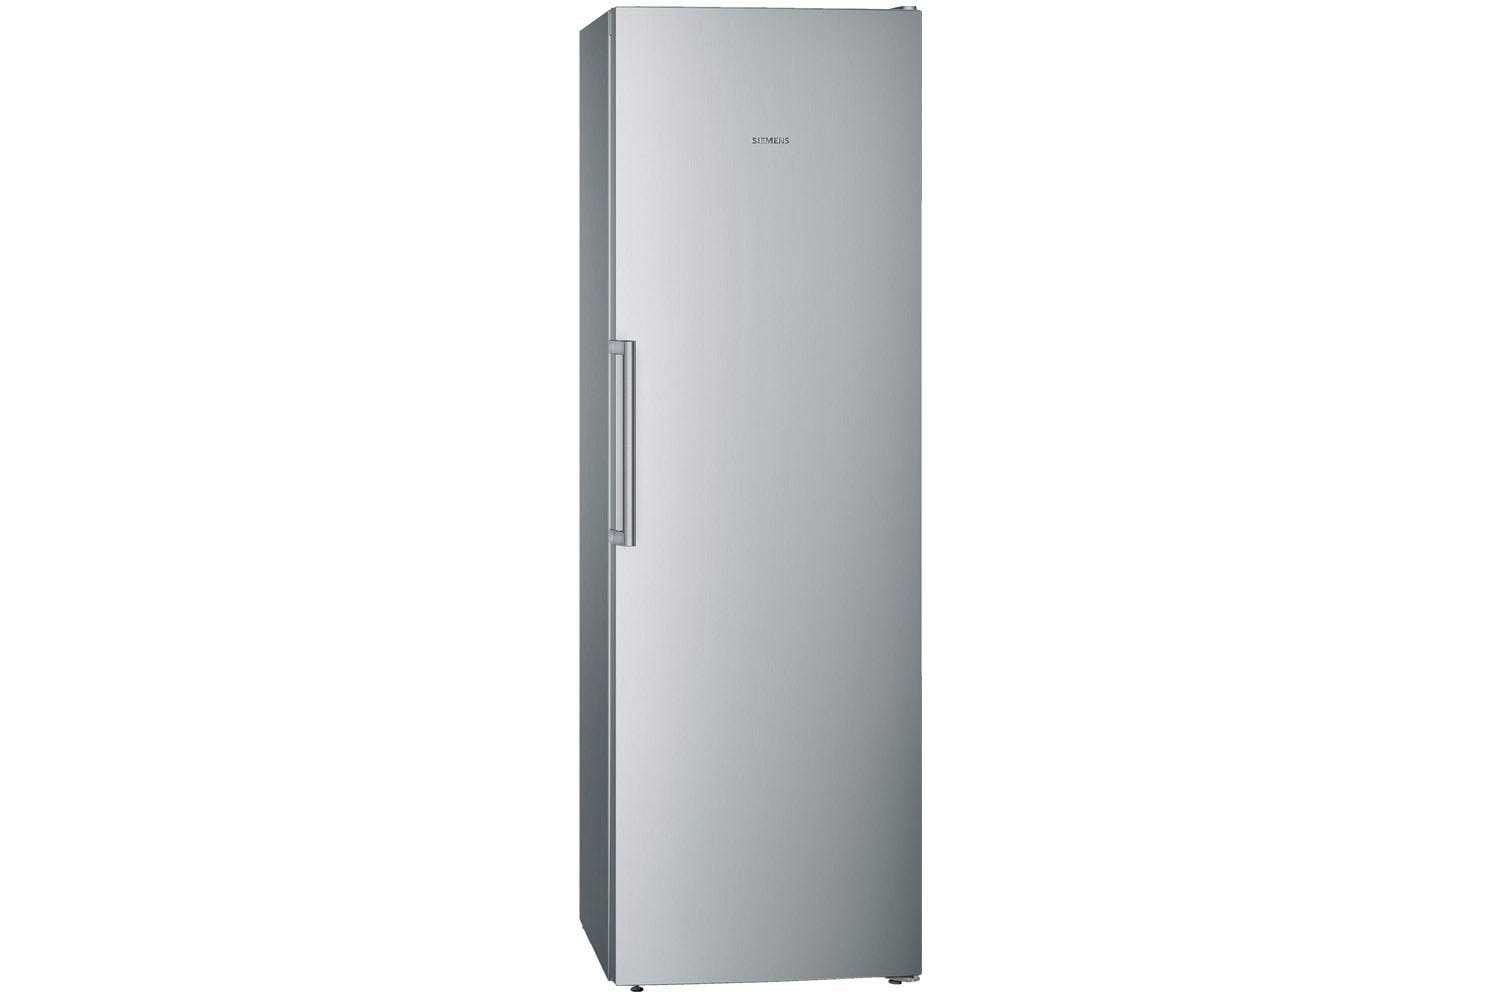 Siemens Upright Freezer Stainless Steel | GS36NVI30G